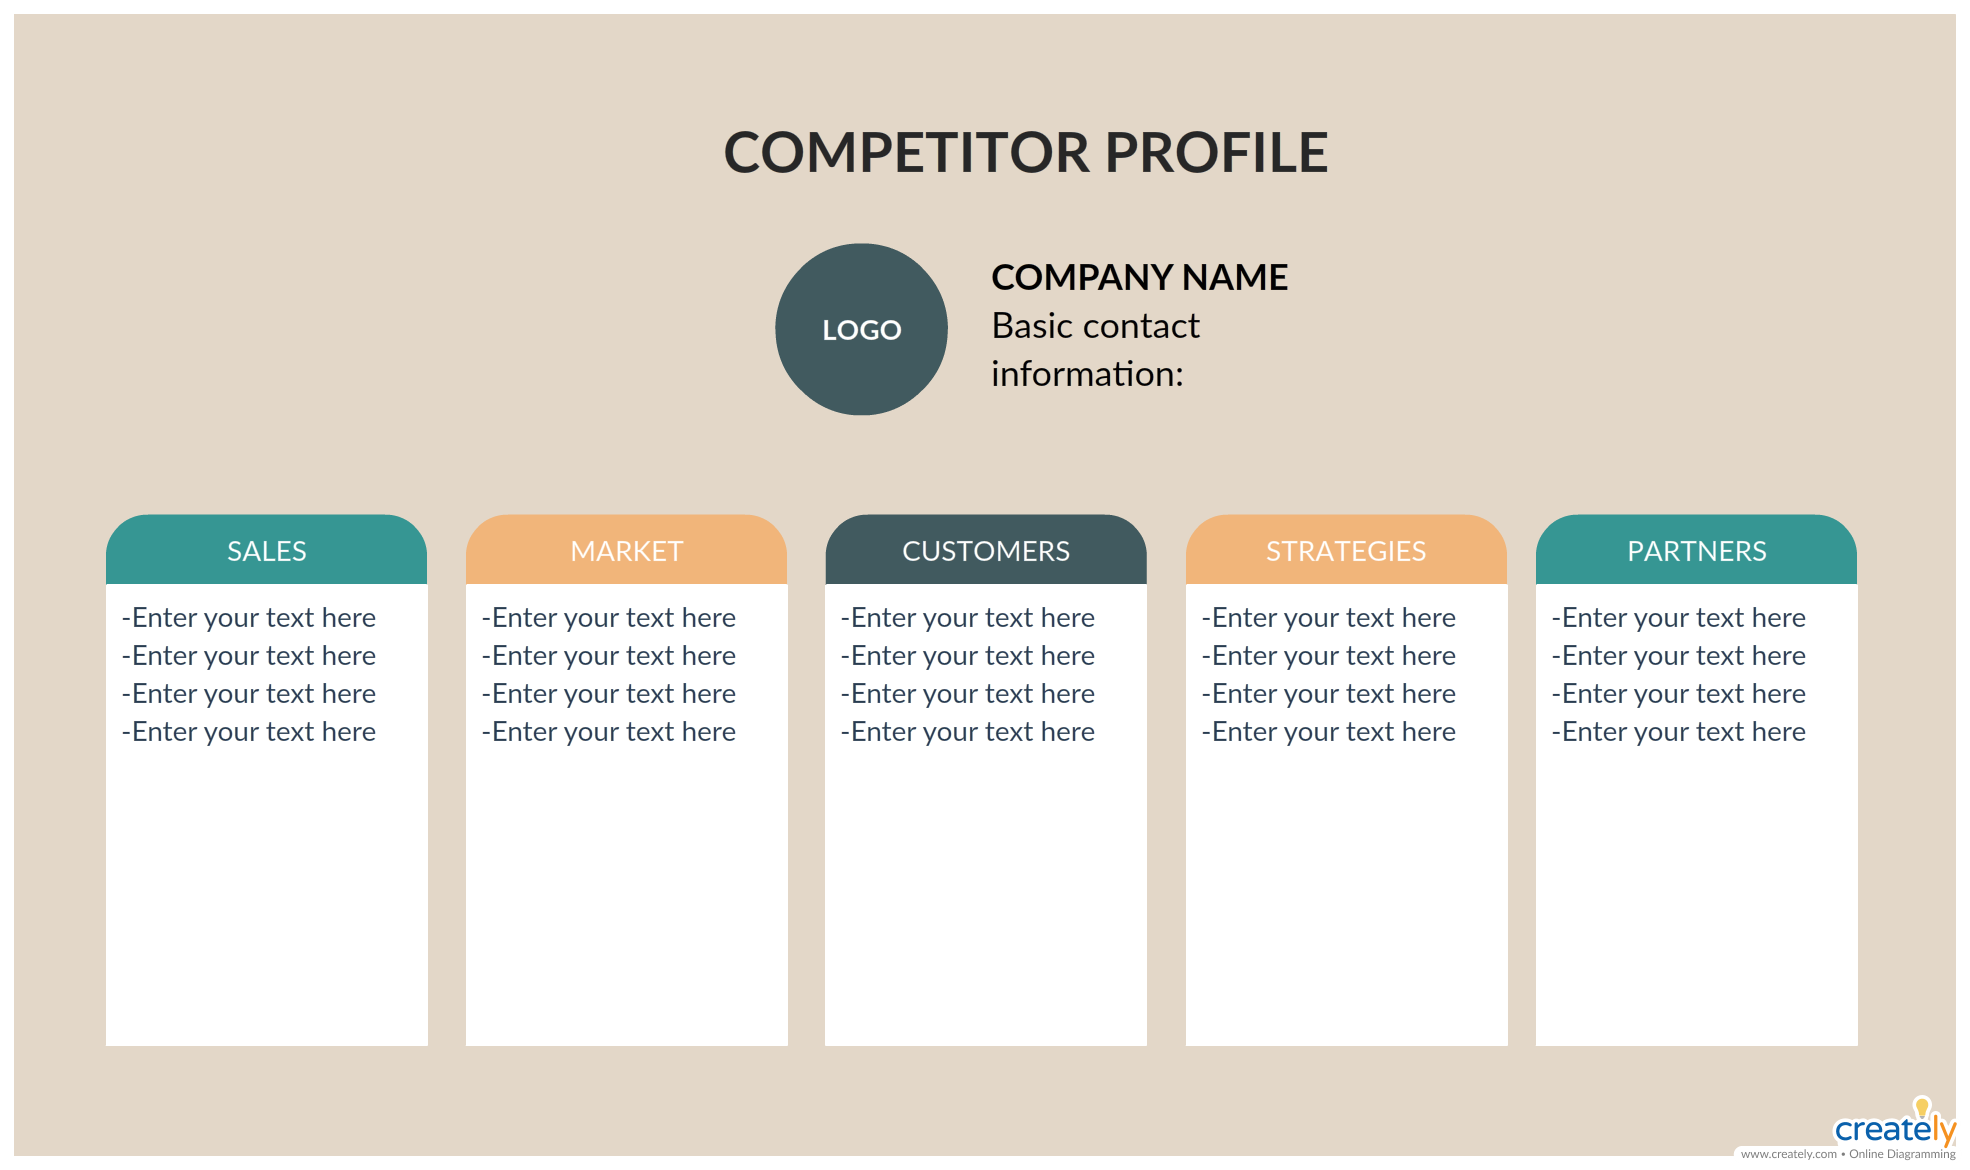 Compeor Profile Template To Organize And Yze The Information That You Have Of Your Compeors